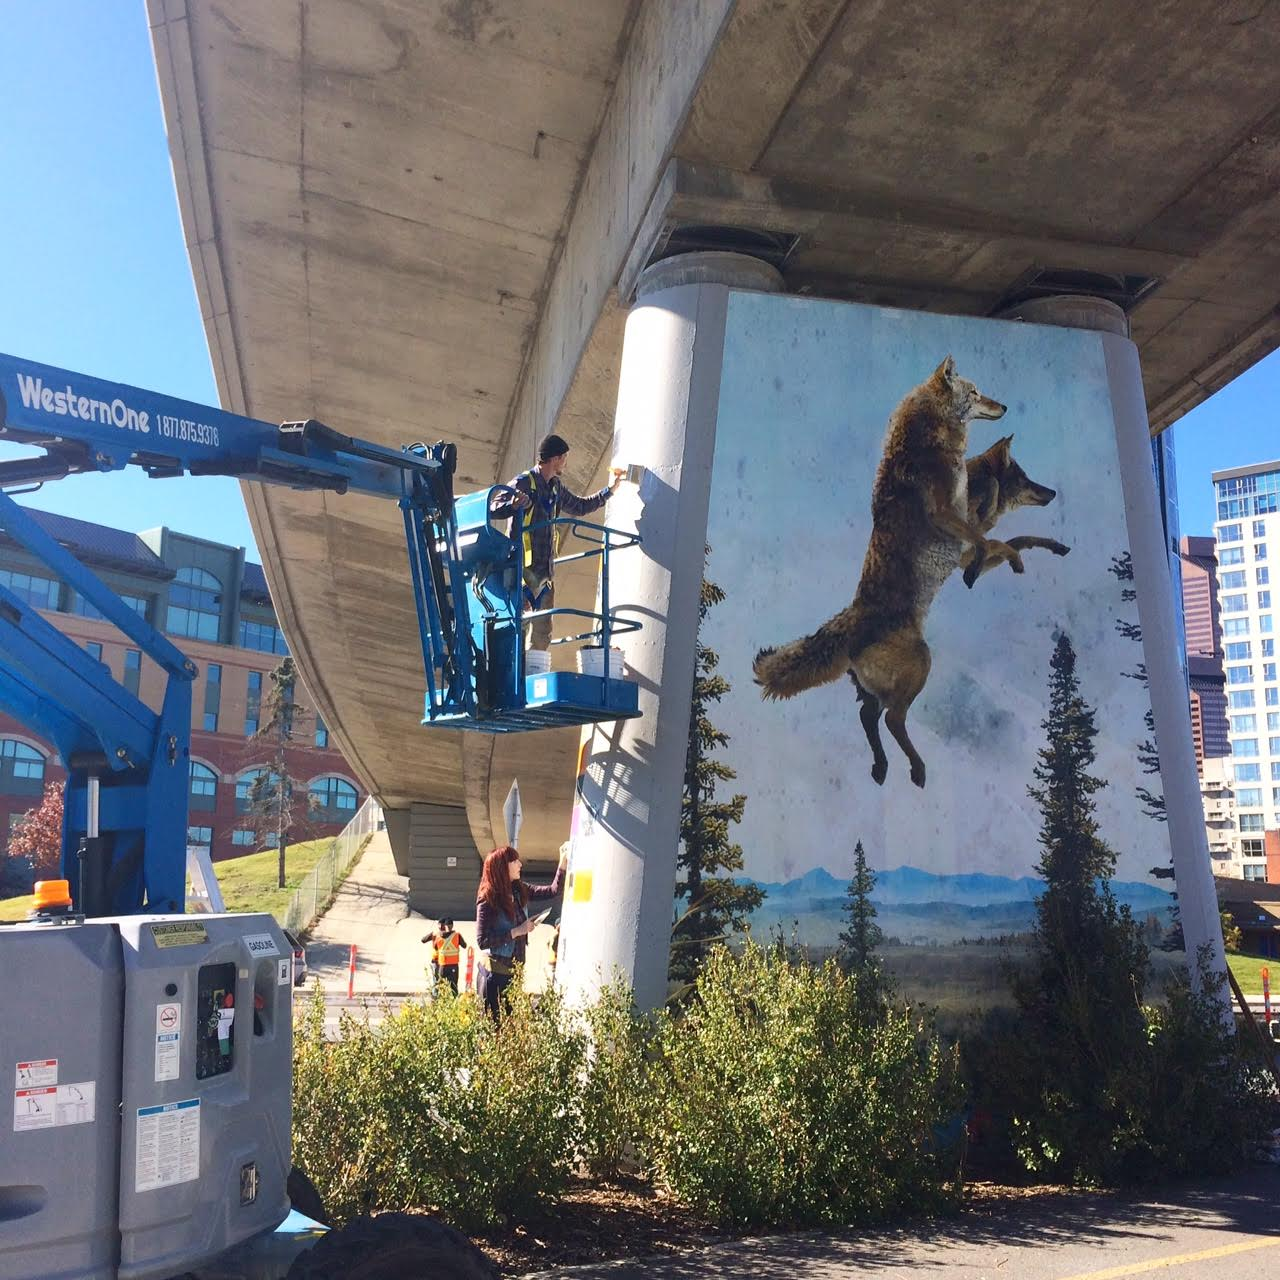 I rented a boom lift to be able to put up the artwork. Each abutment was about 20ft tall.